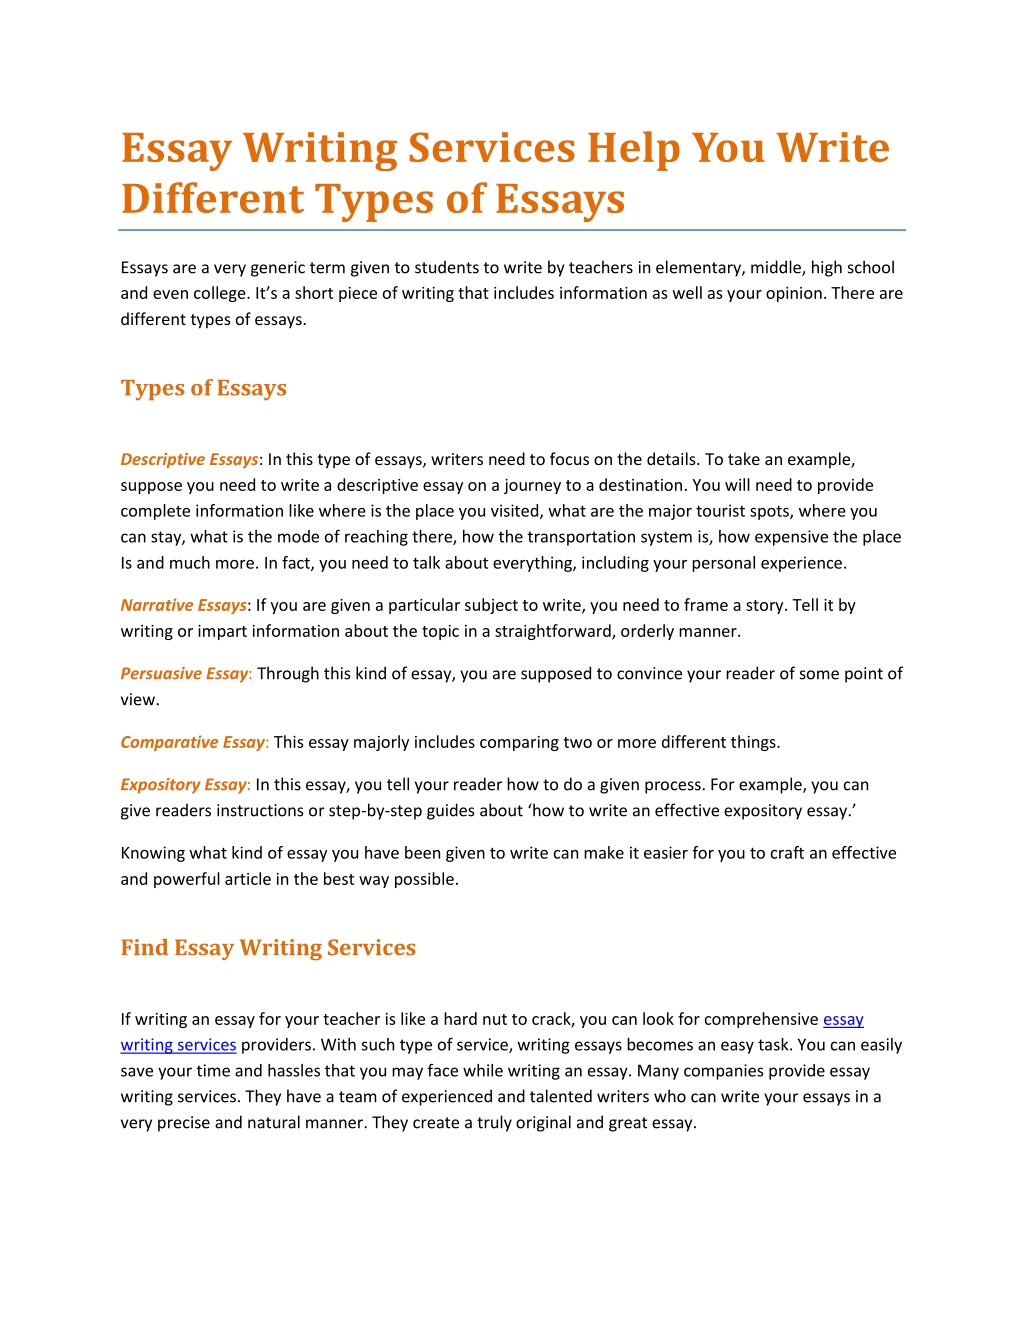 how are persuasive and expository essays different